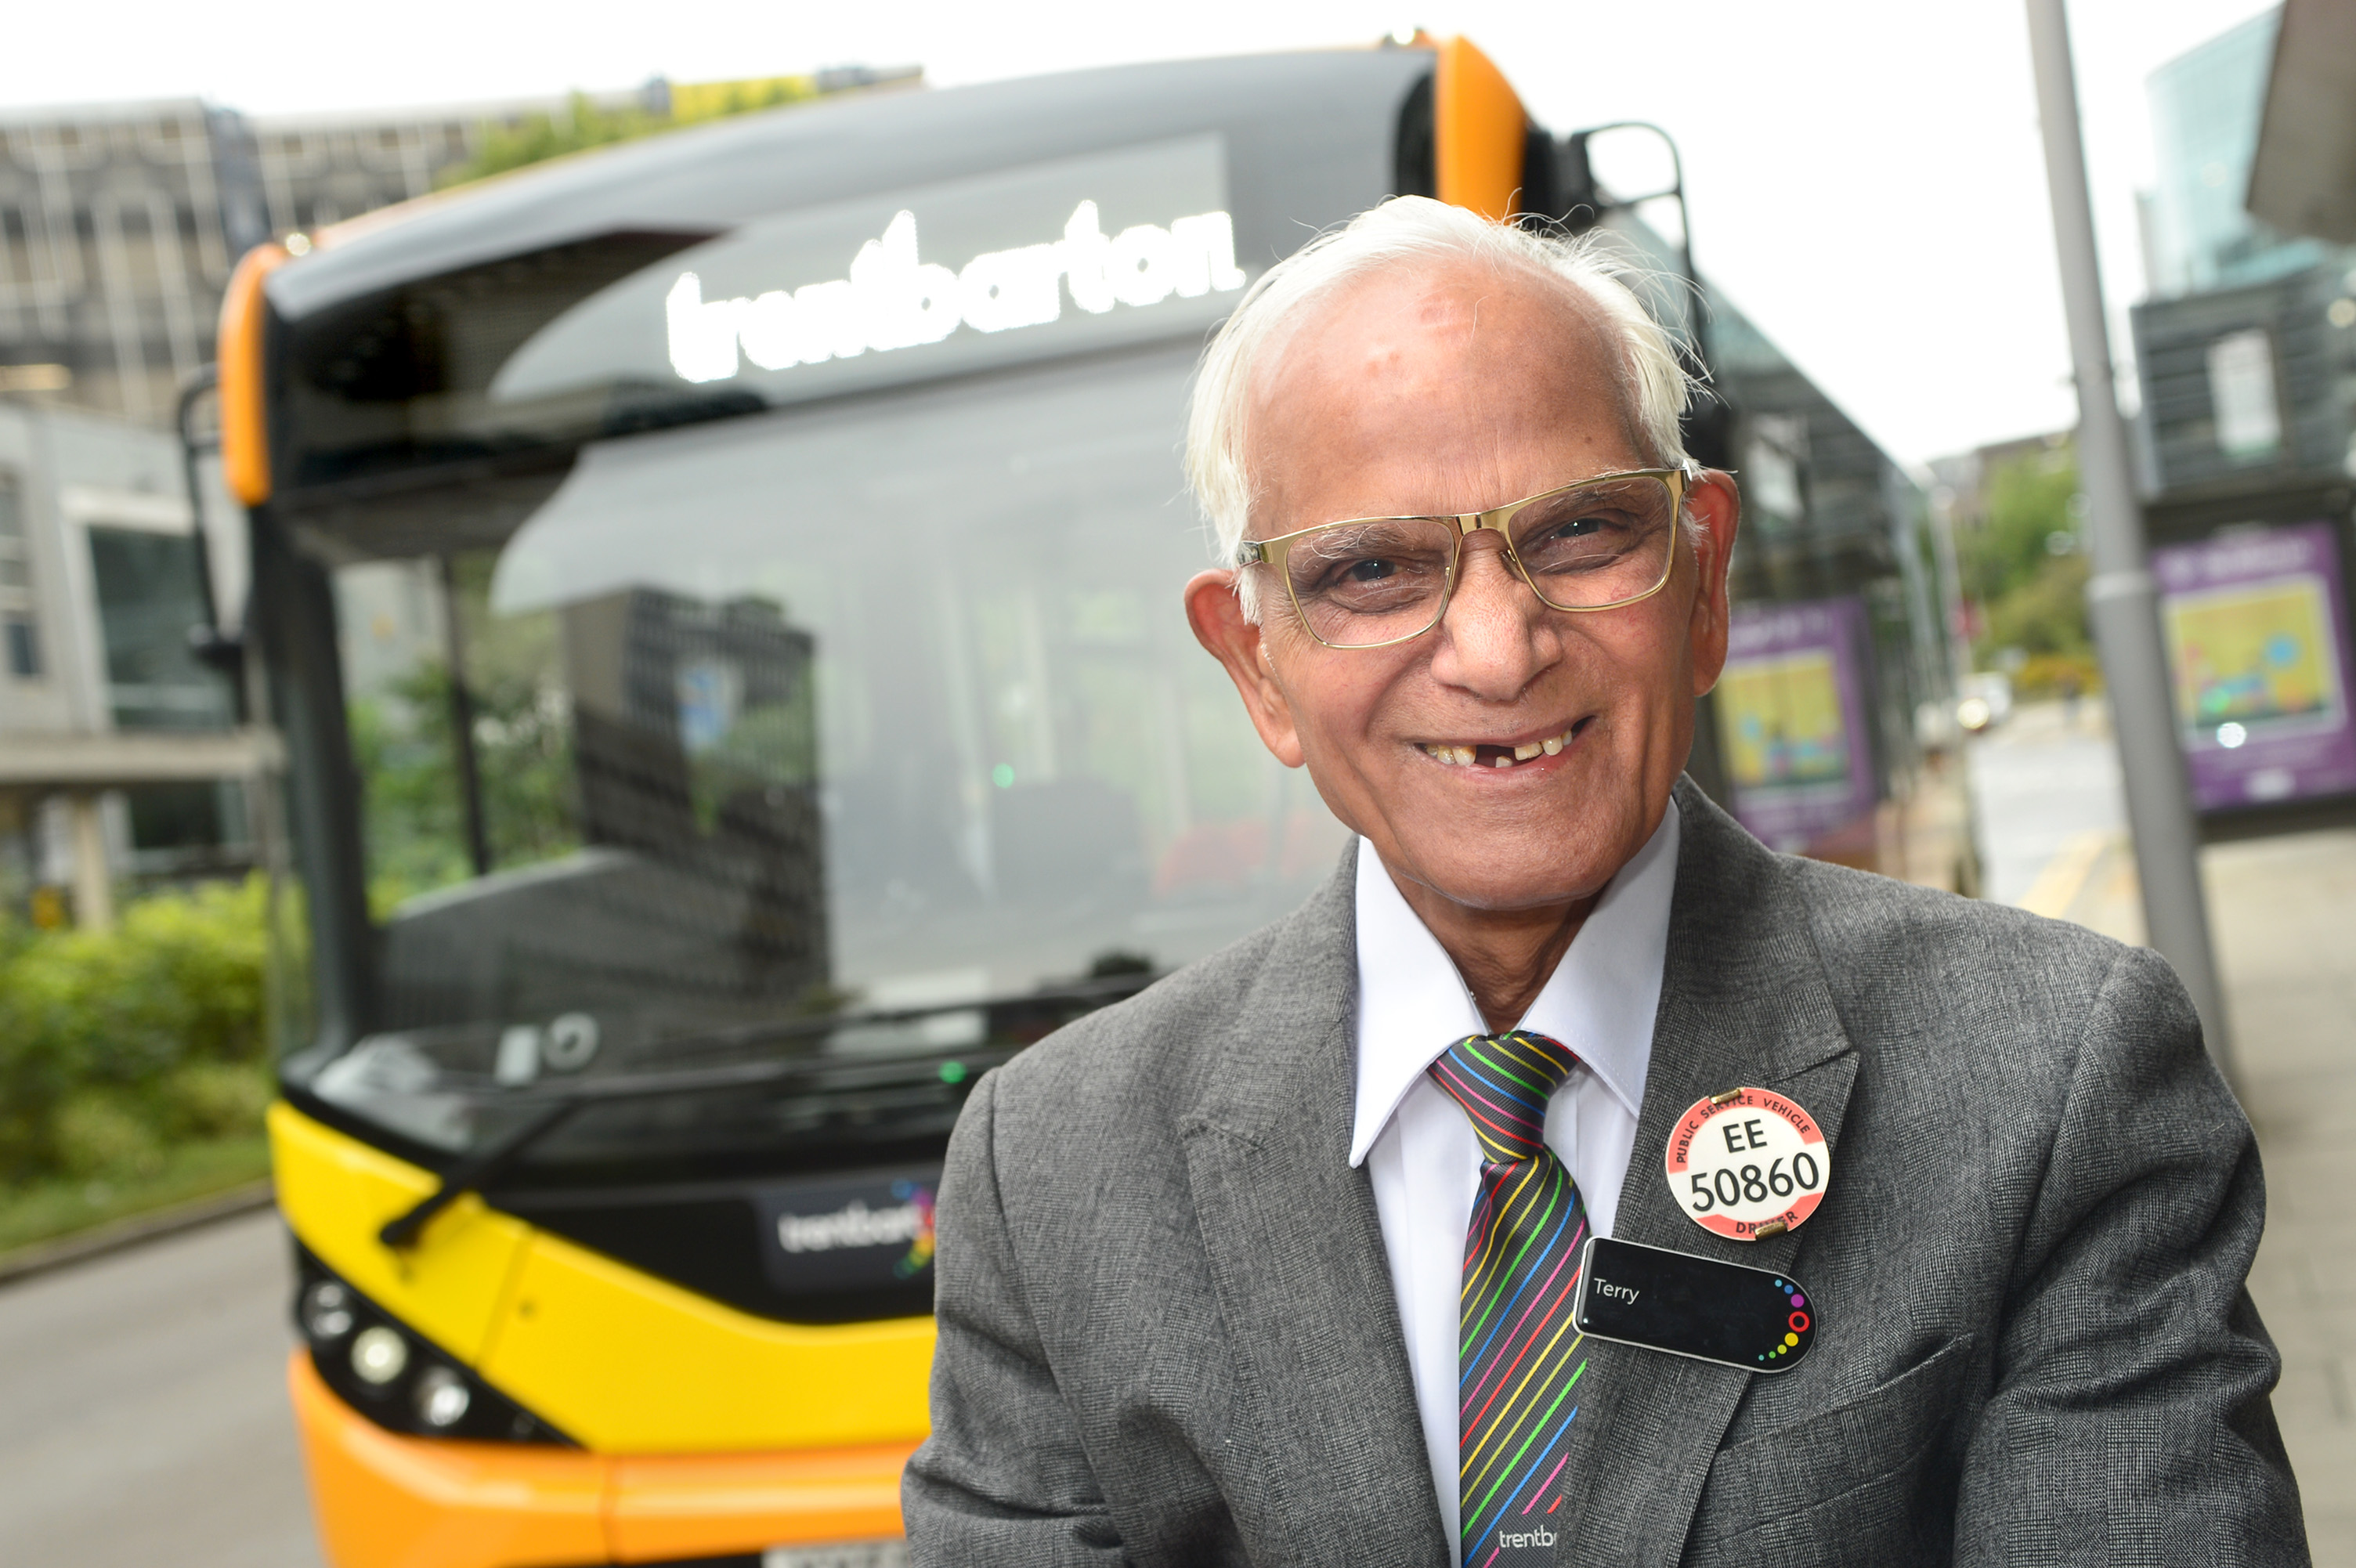 Terry takes his bow from the buses after 53 years